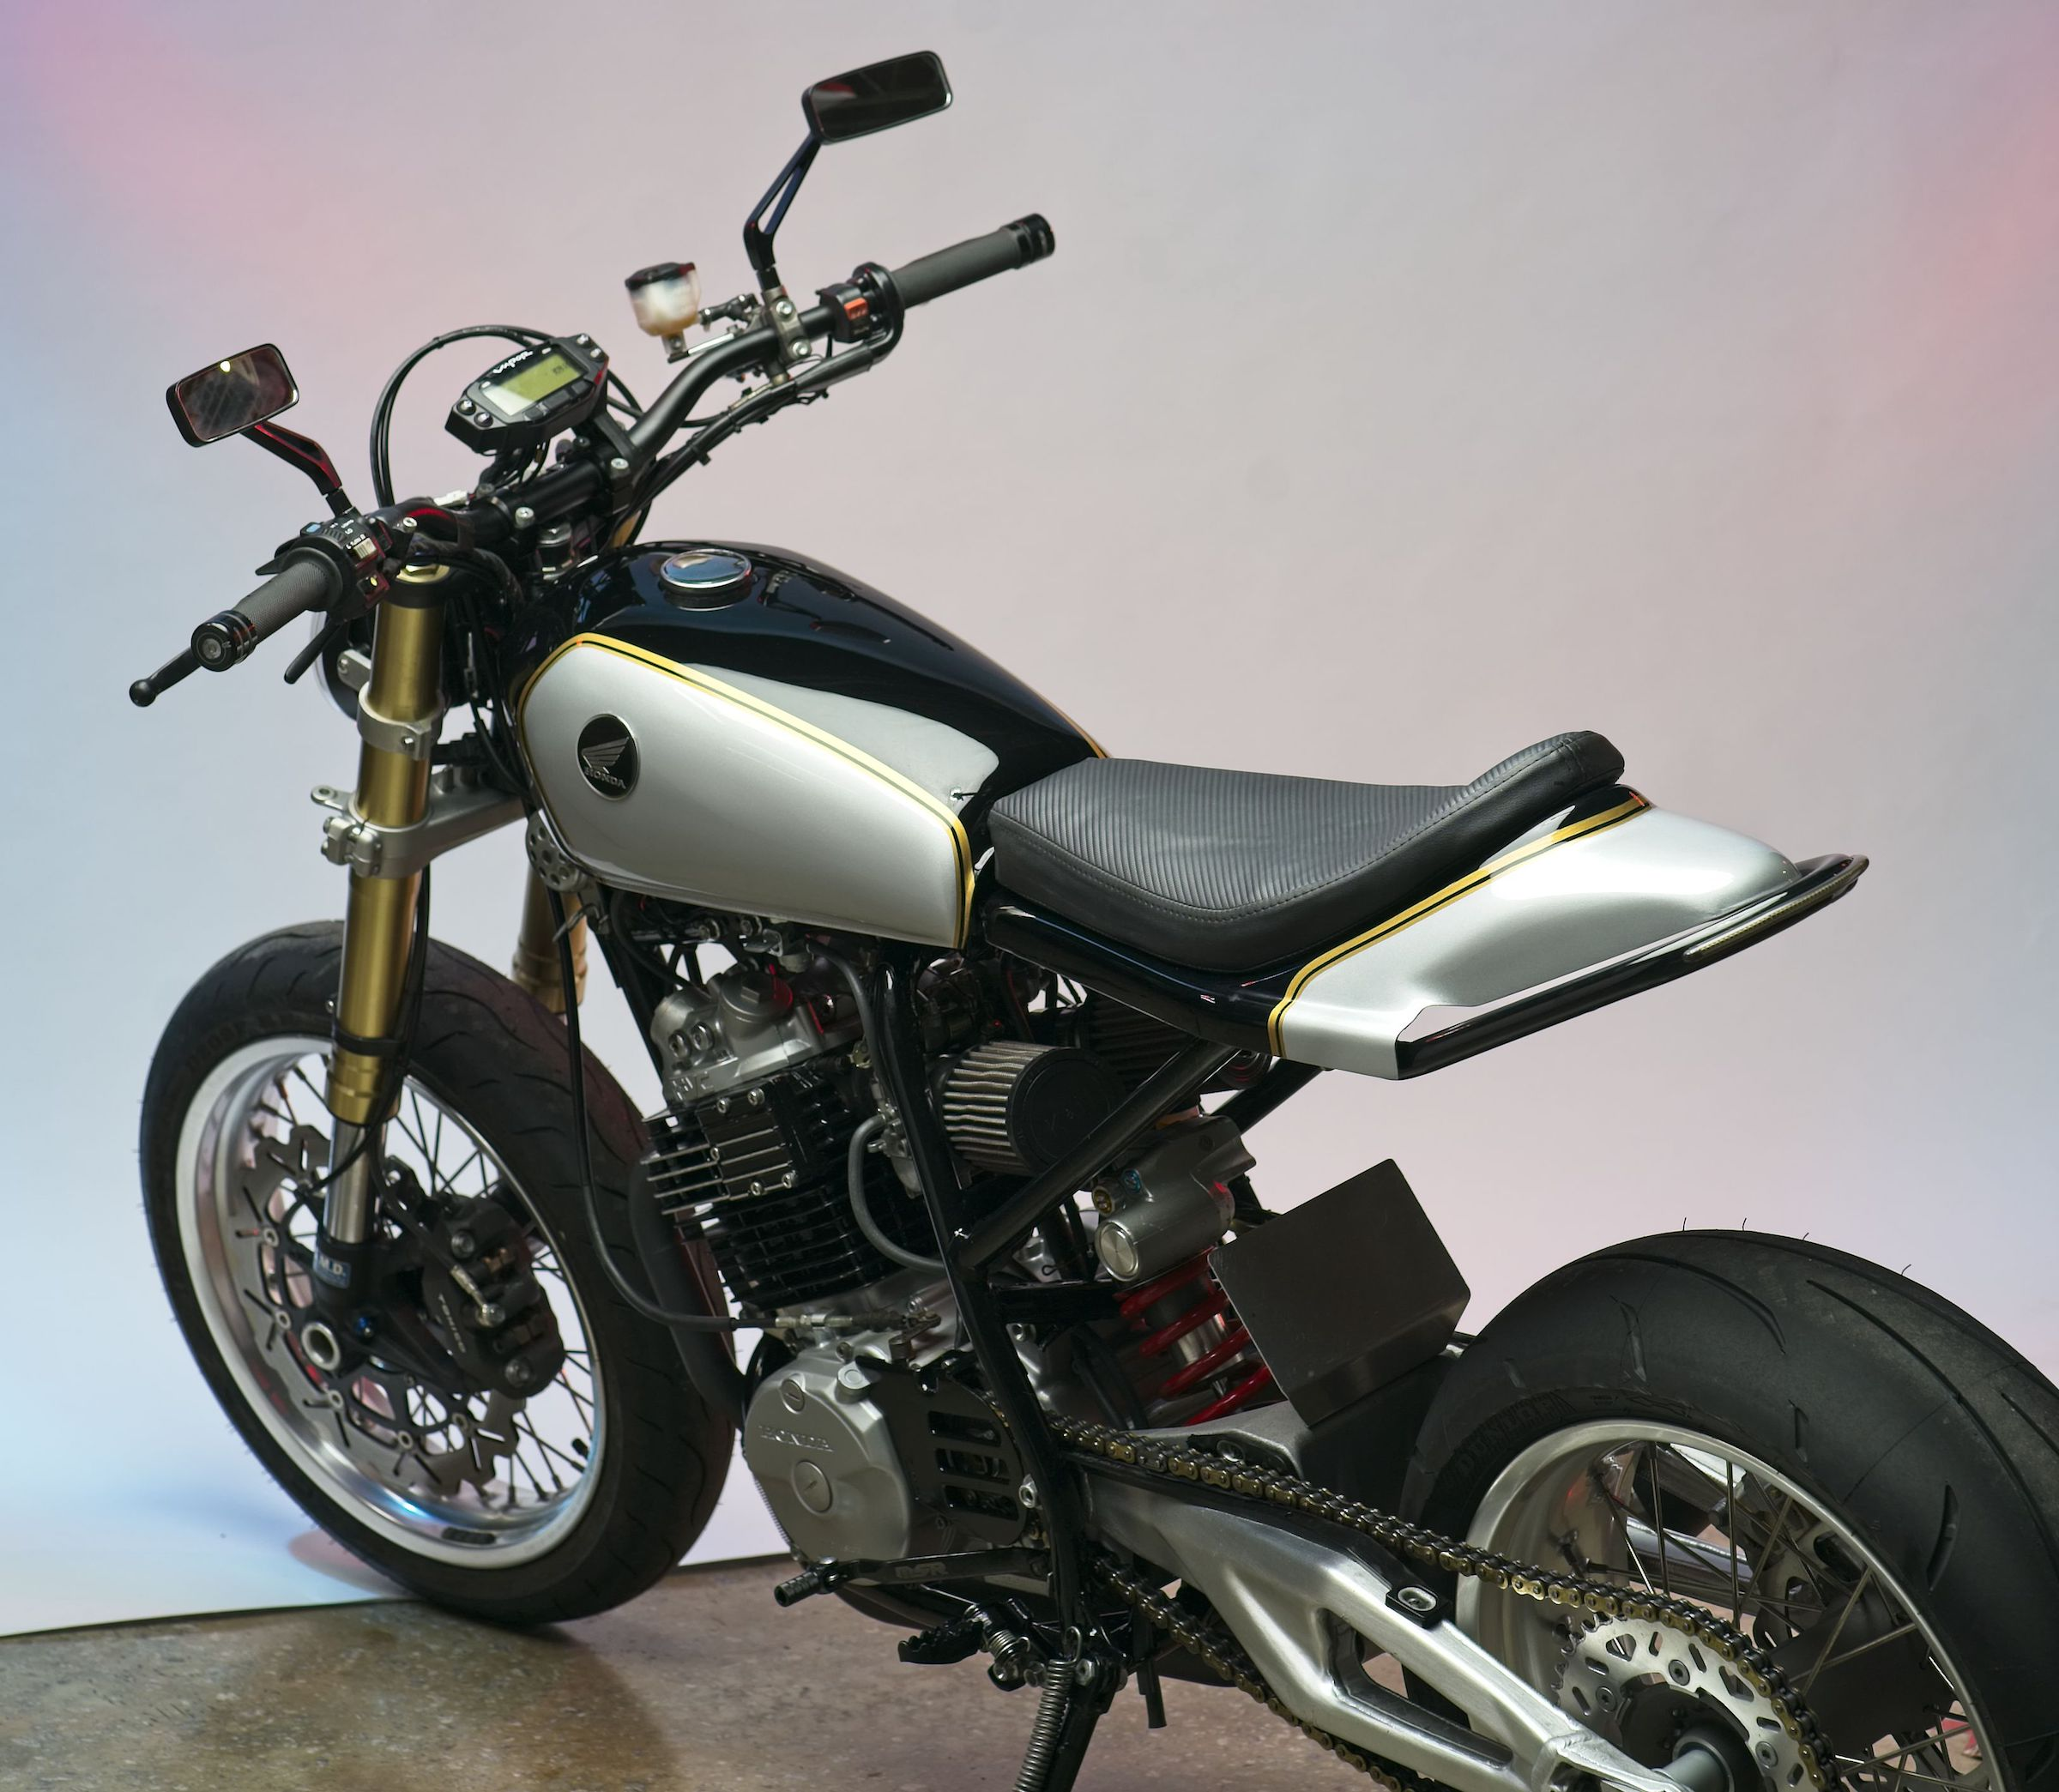 father son project the lloyd brothers honda xl600r street tracker. Black Bedroom Furniture Sets. Home Design Ideas